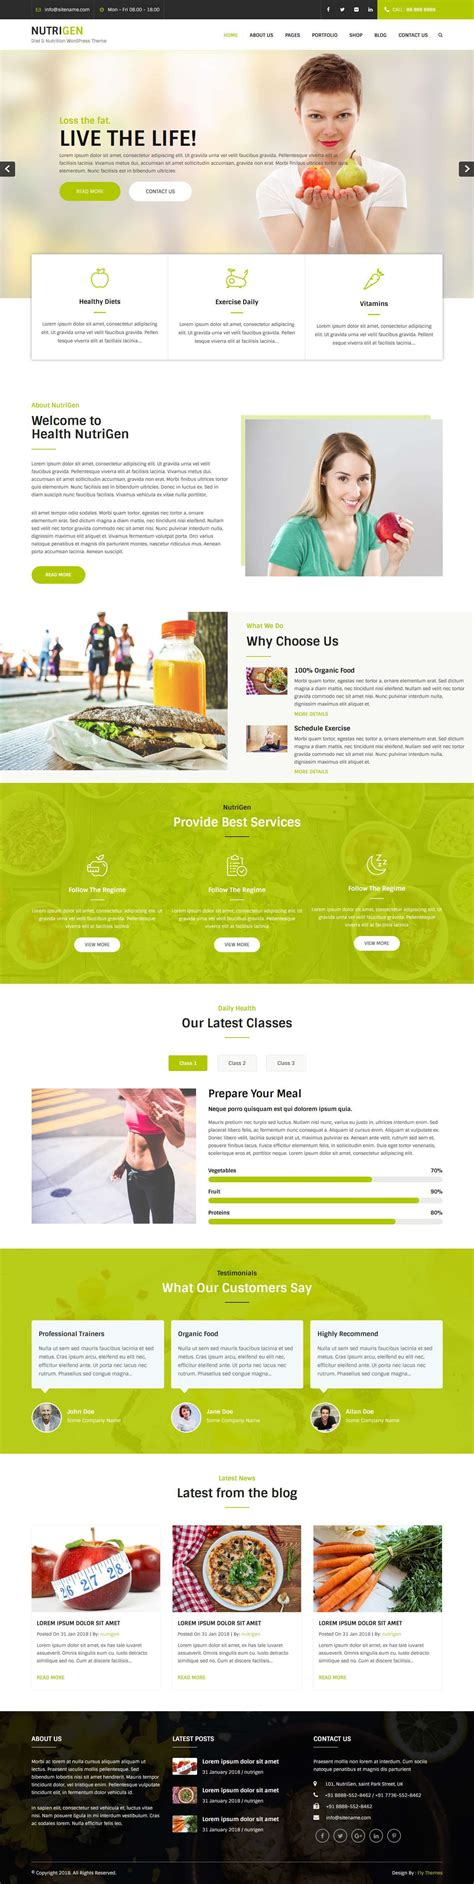 wordpress themes nutrition free diet and nutrition wordpress theme is made for health and